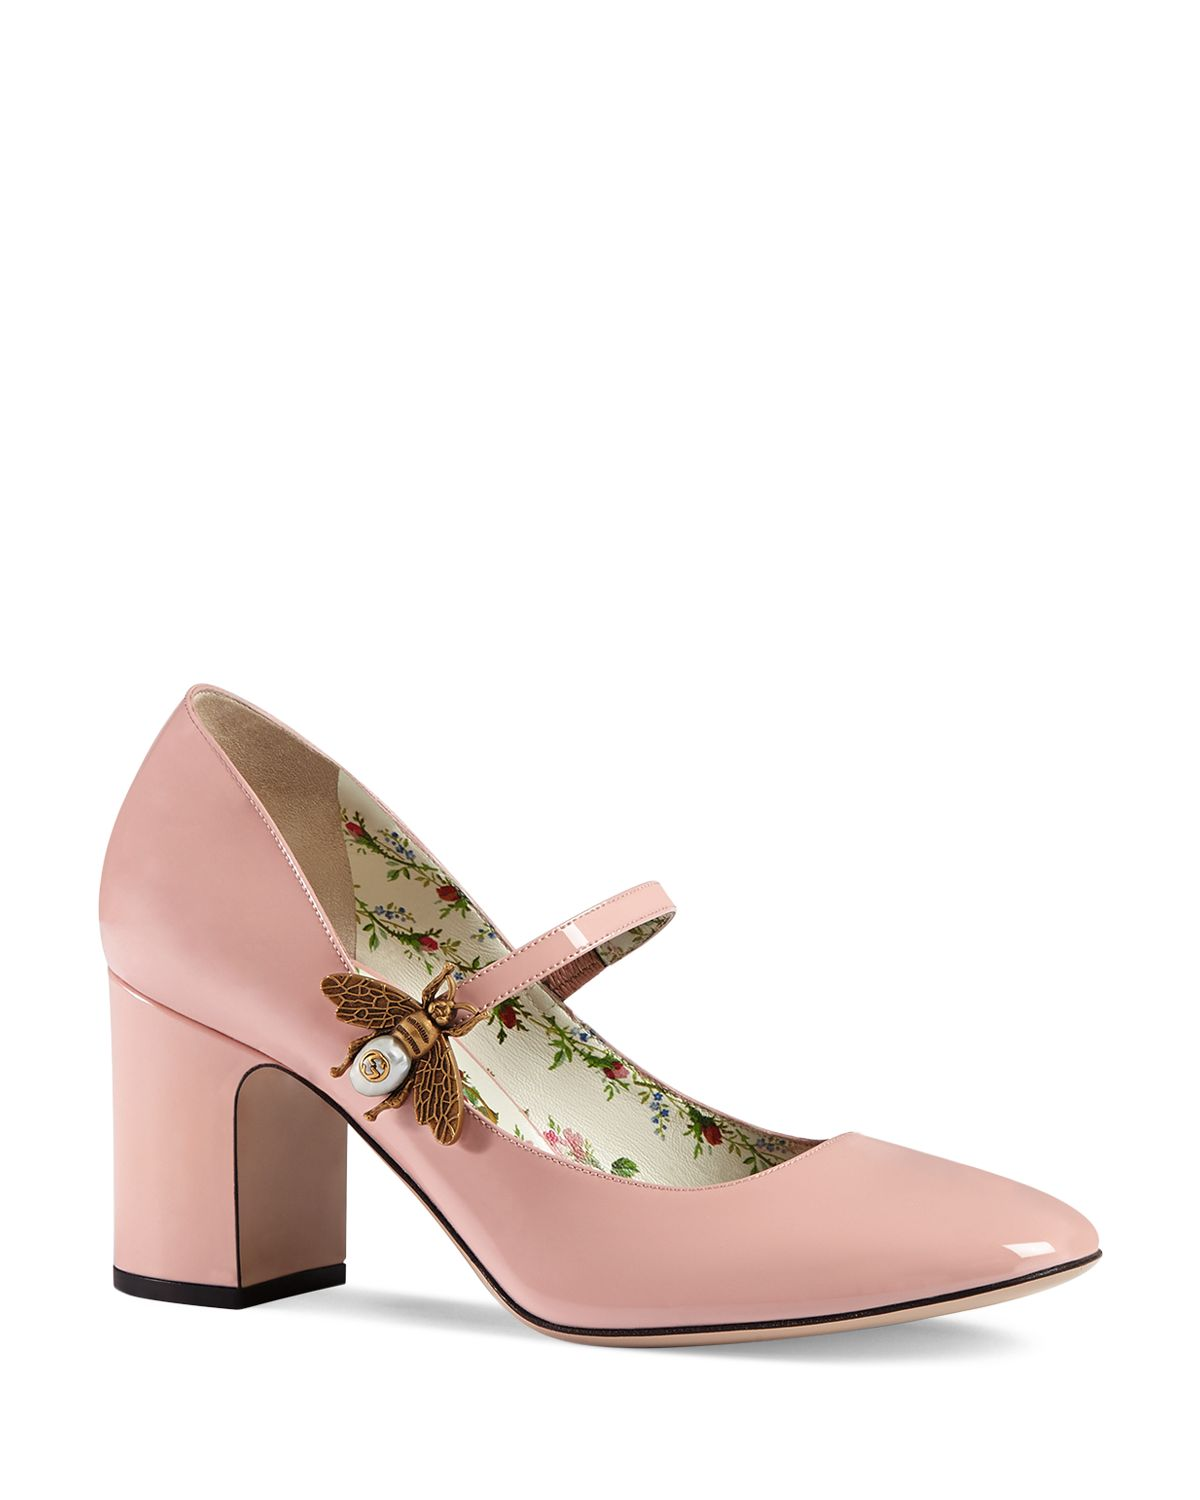 Gucci Bee Bow Pumps